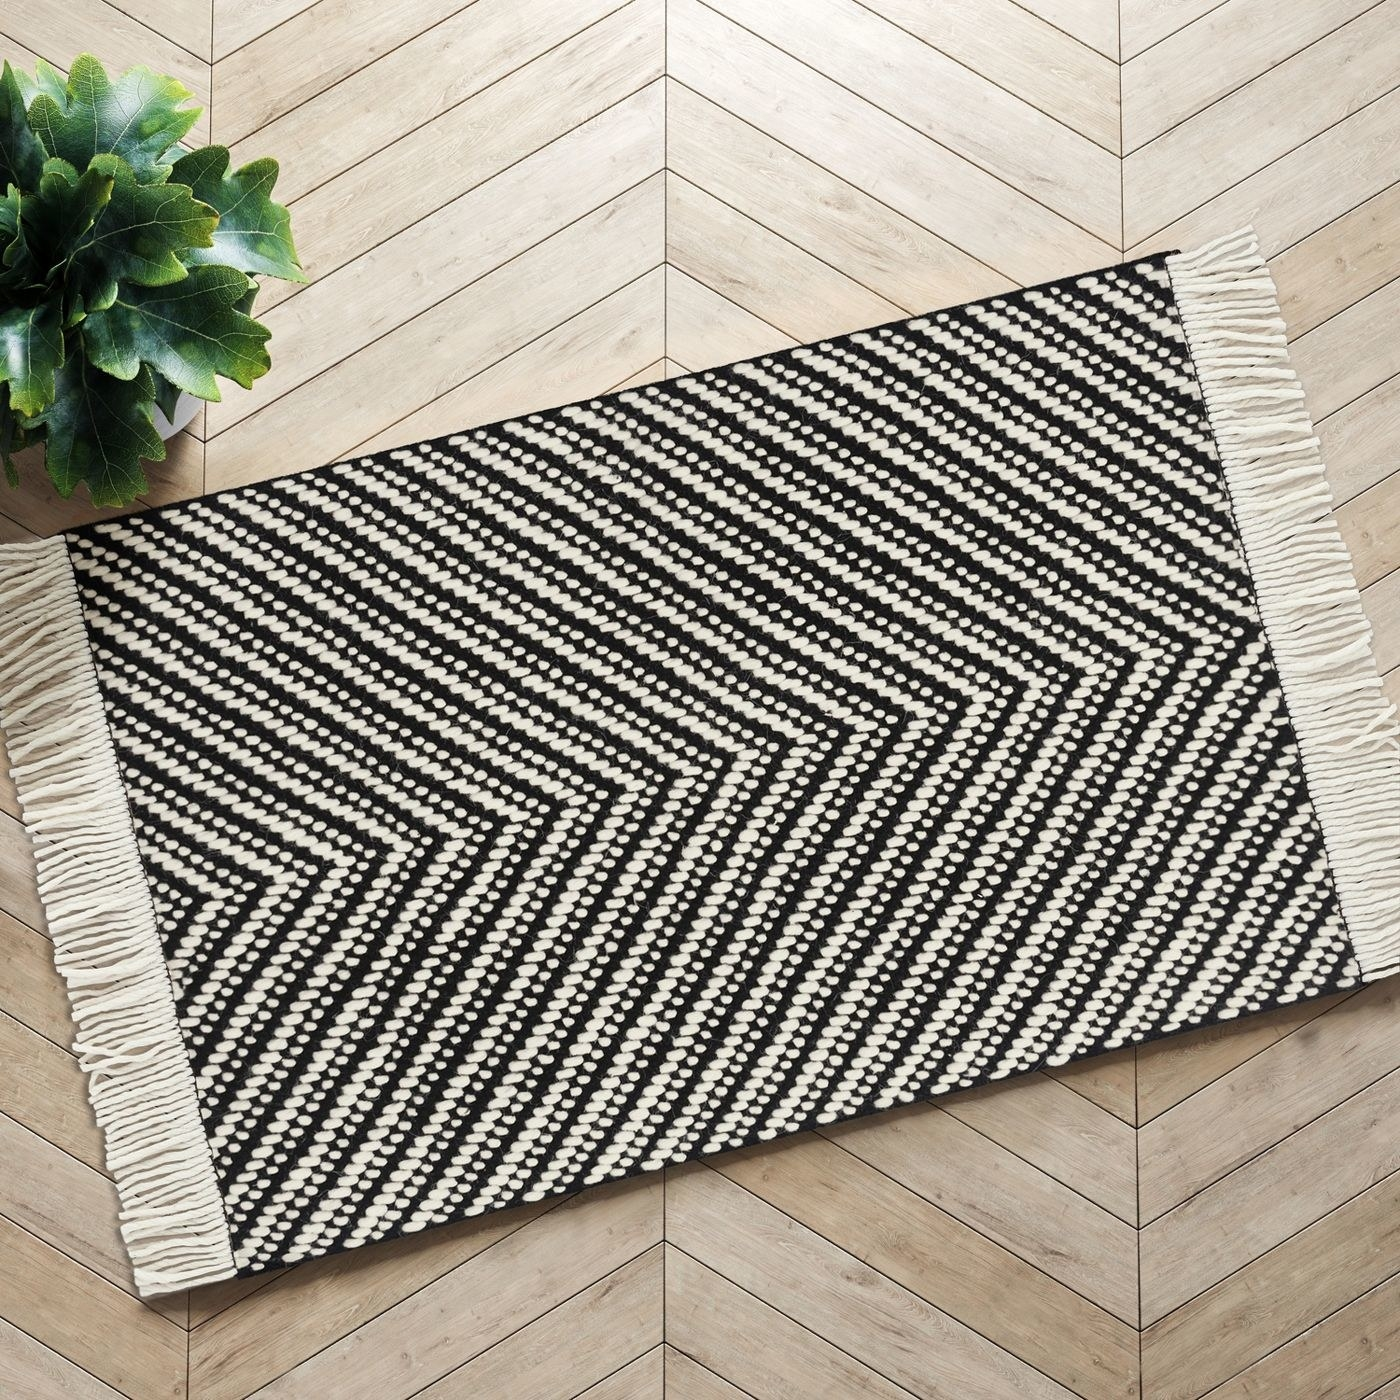 Floor with black and white chevron rug